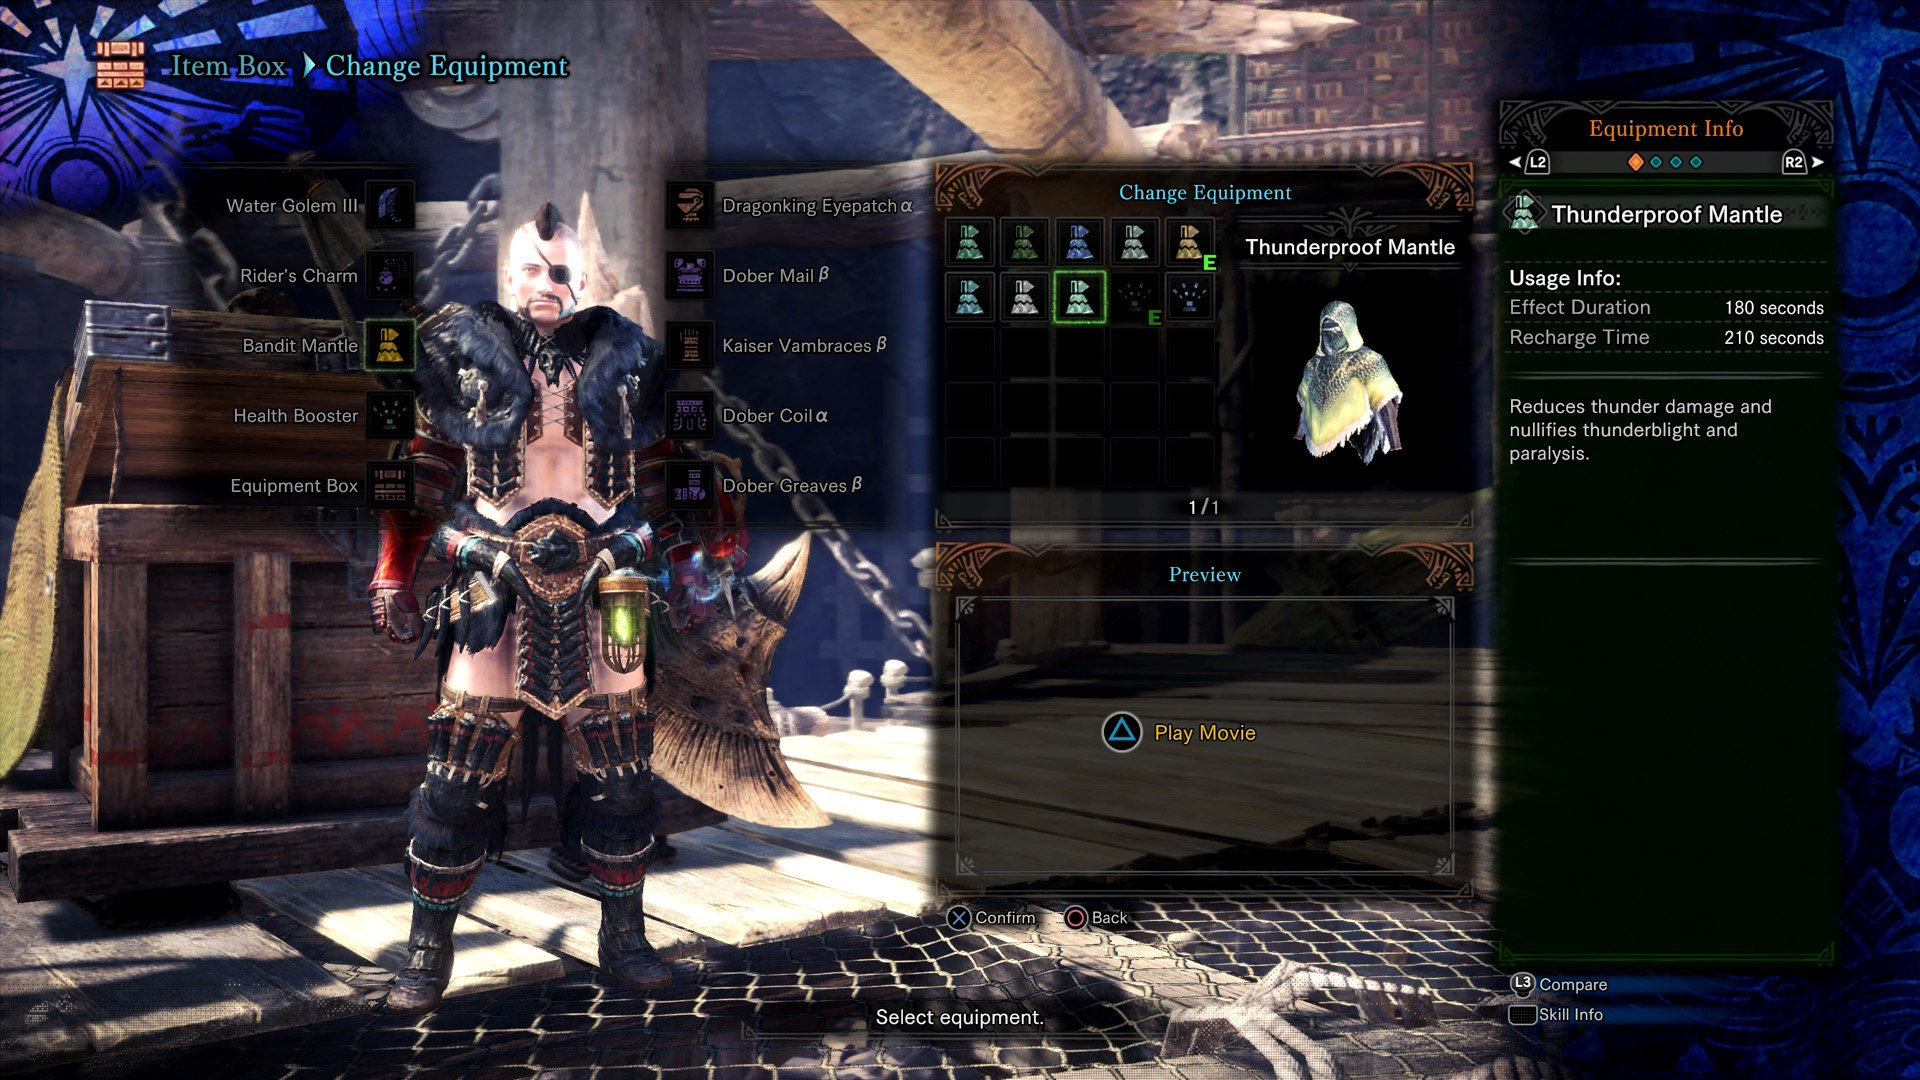 Thunderproof Mantle Monster Hunter World